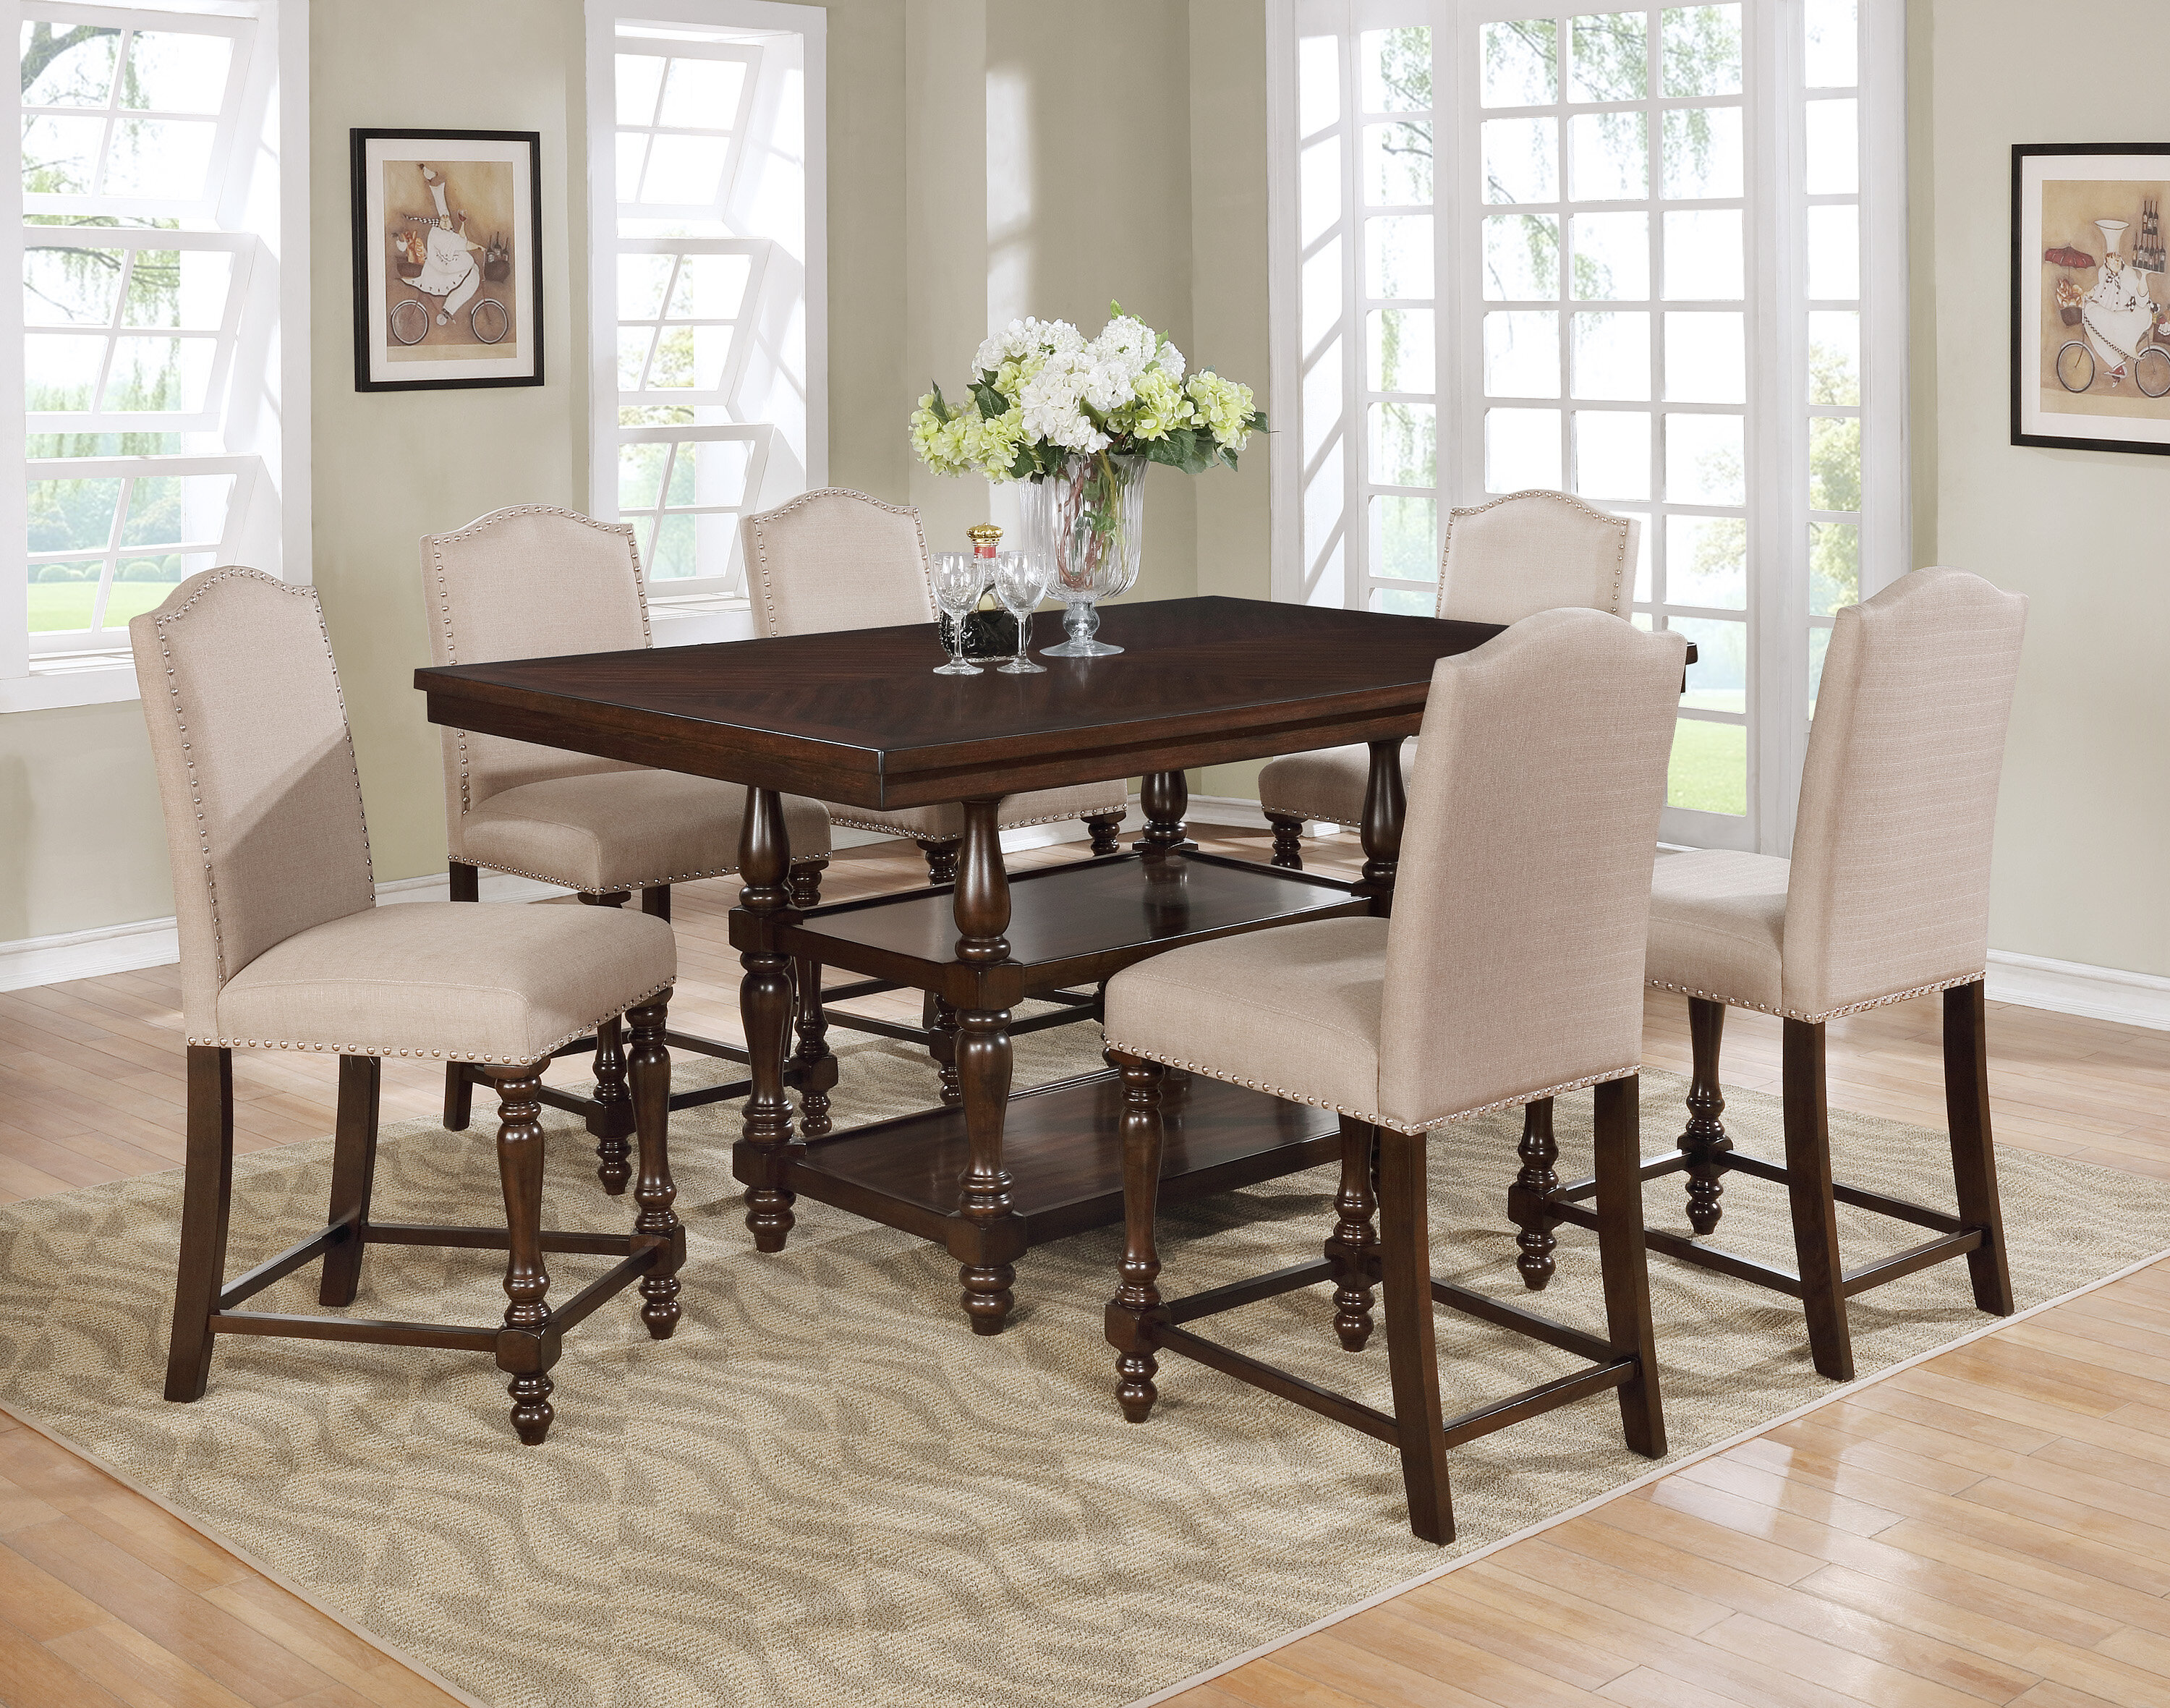 Charlton Home Heady Counter Height Dining Table Reviews Wayfair